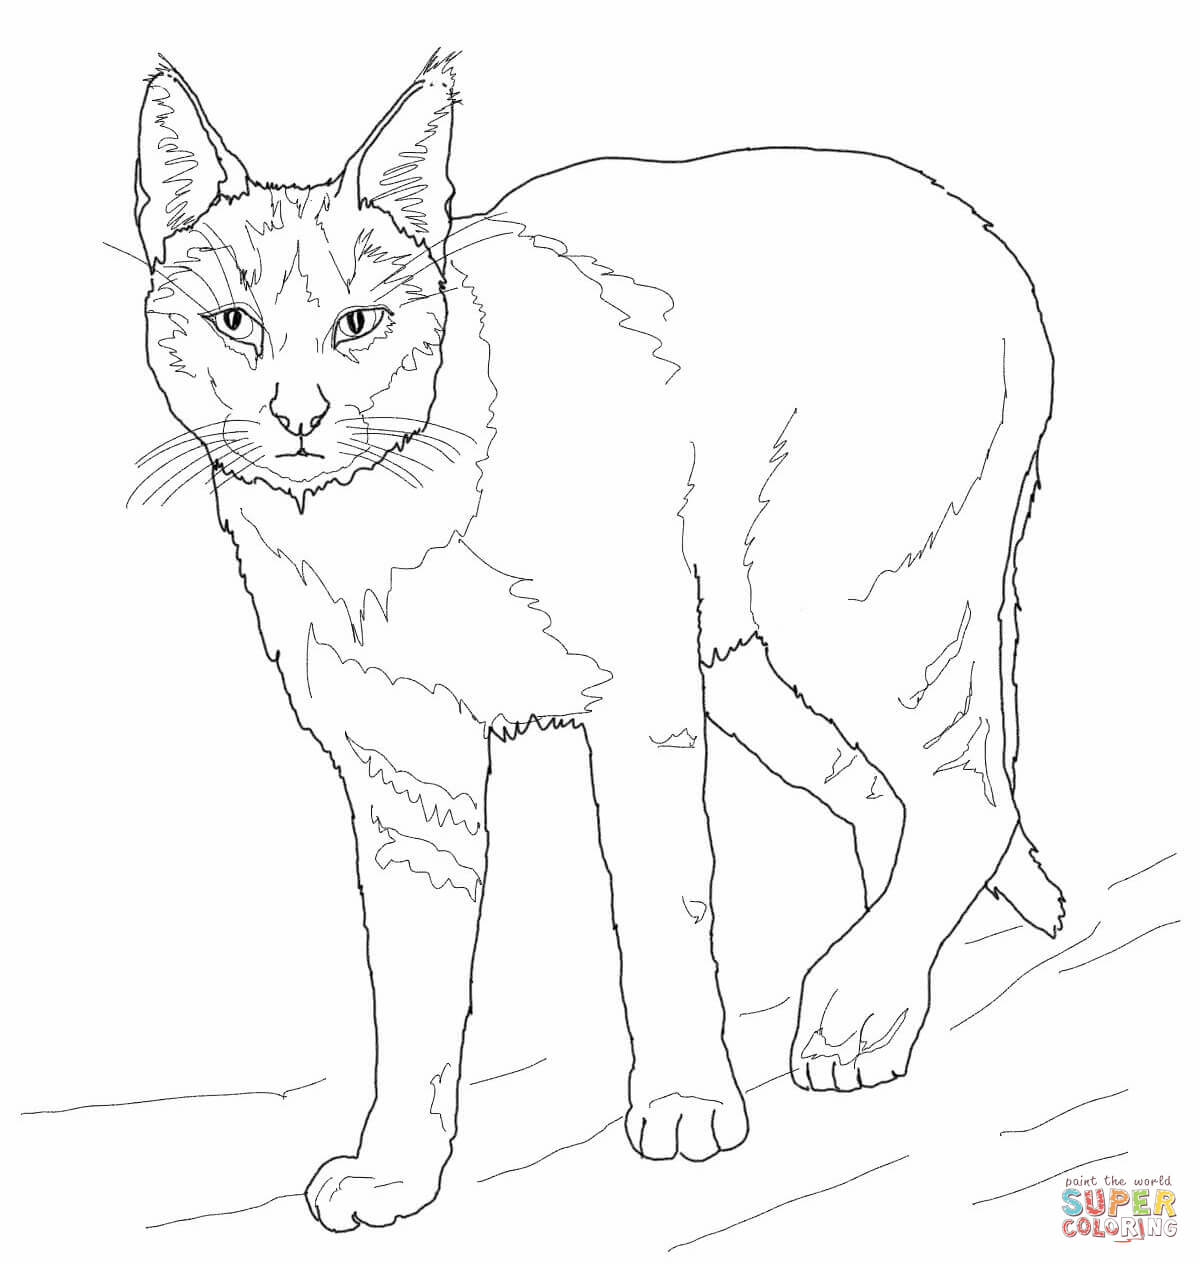 Related Keywords & Suggestions for jungle cat drawing